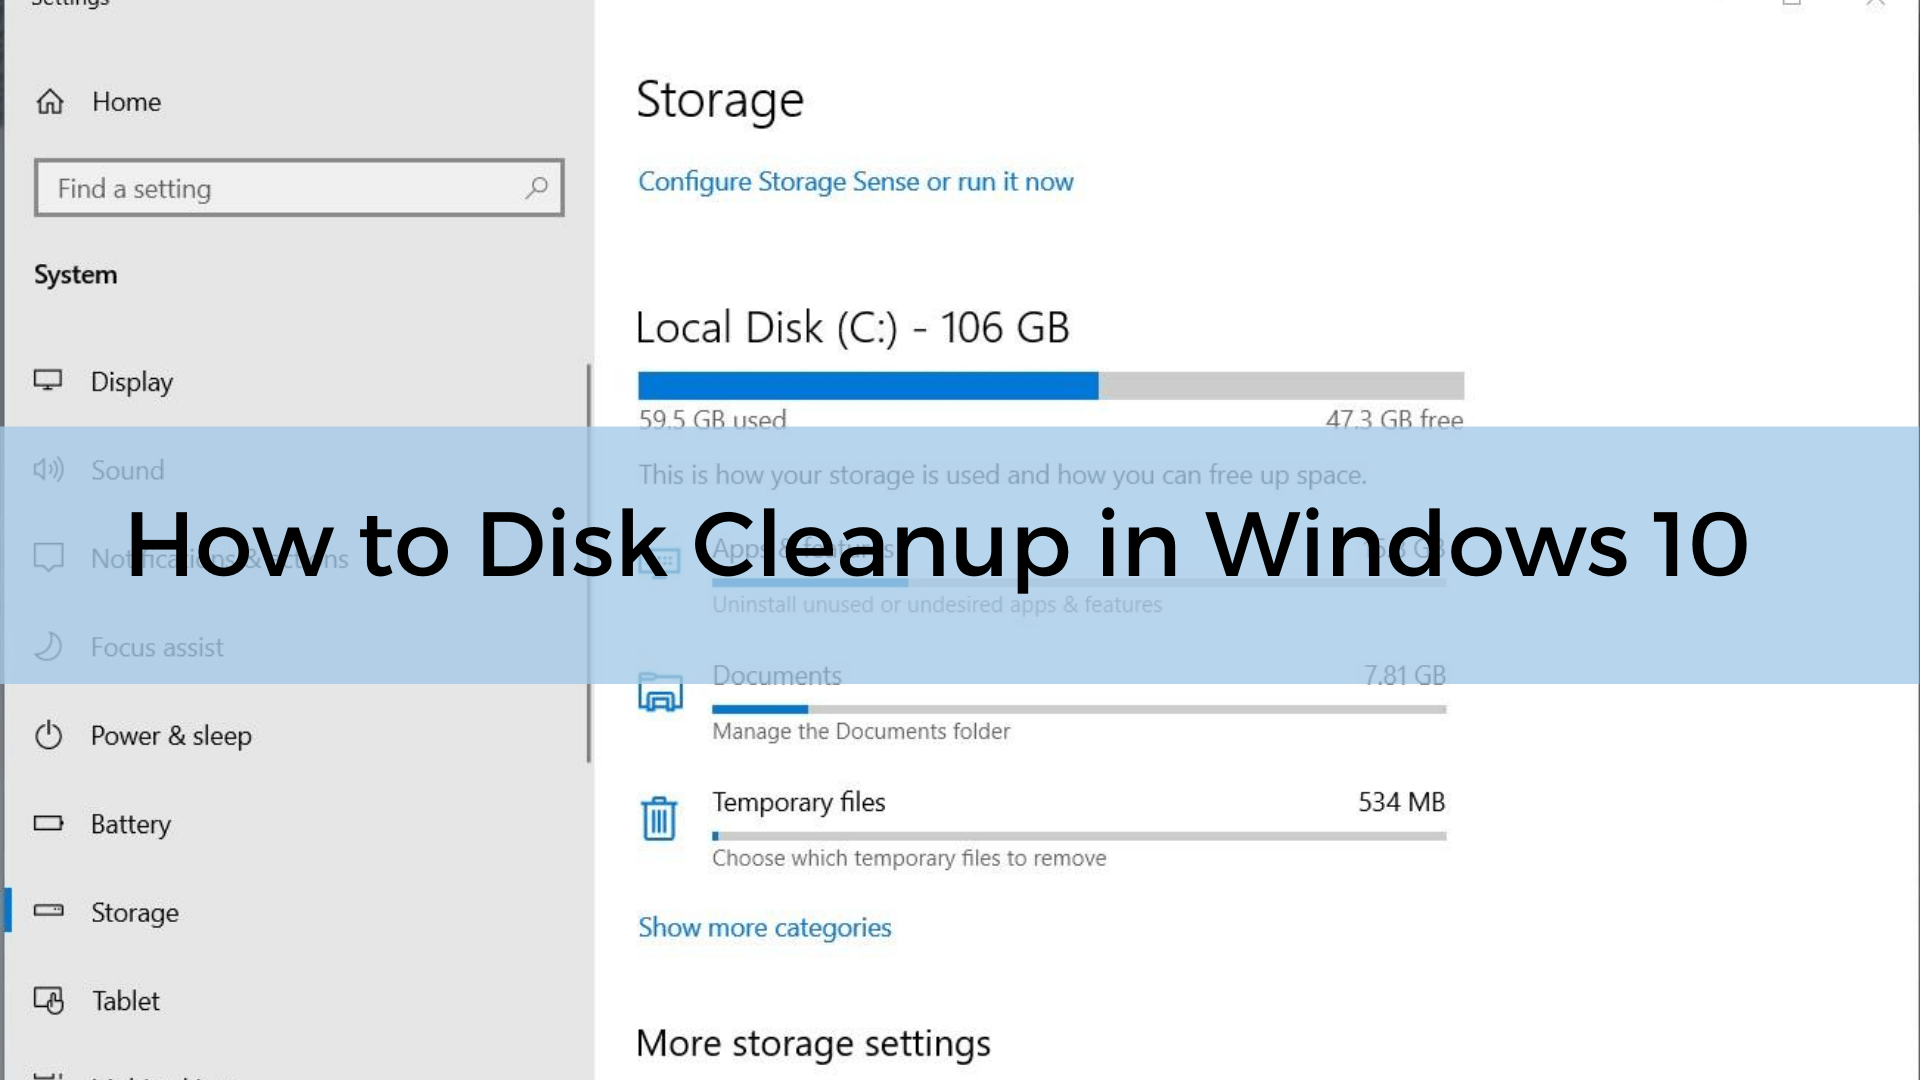 How to Disk Cleanup in Windows 10